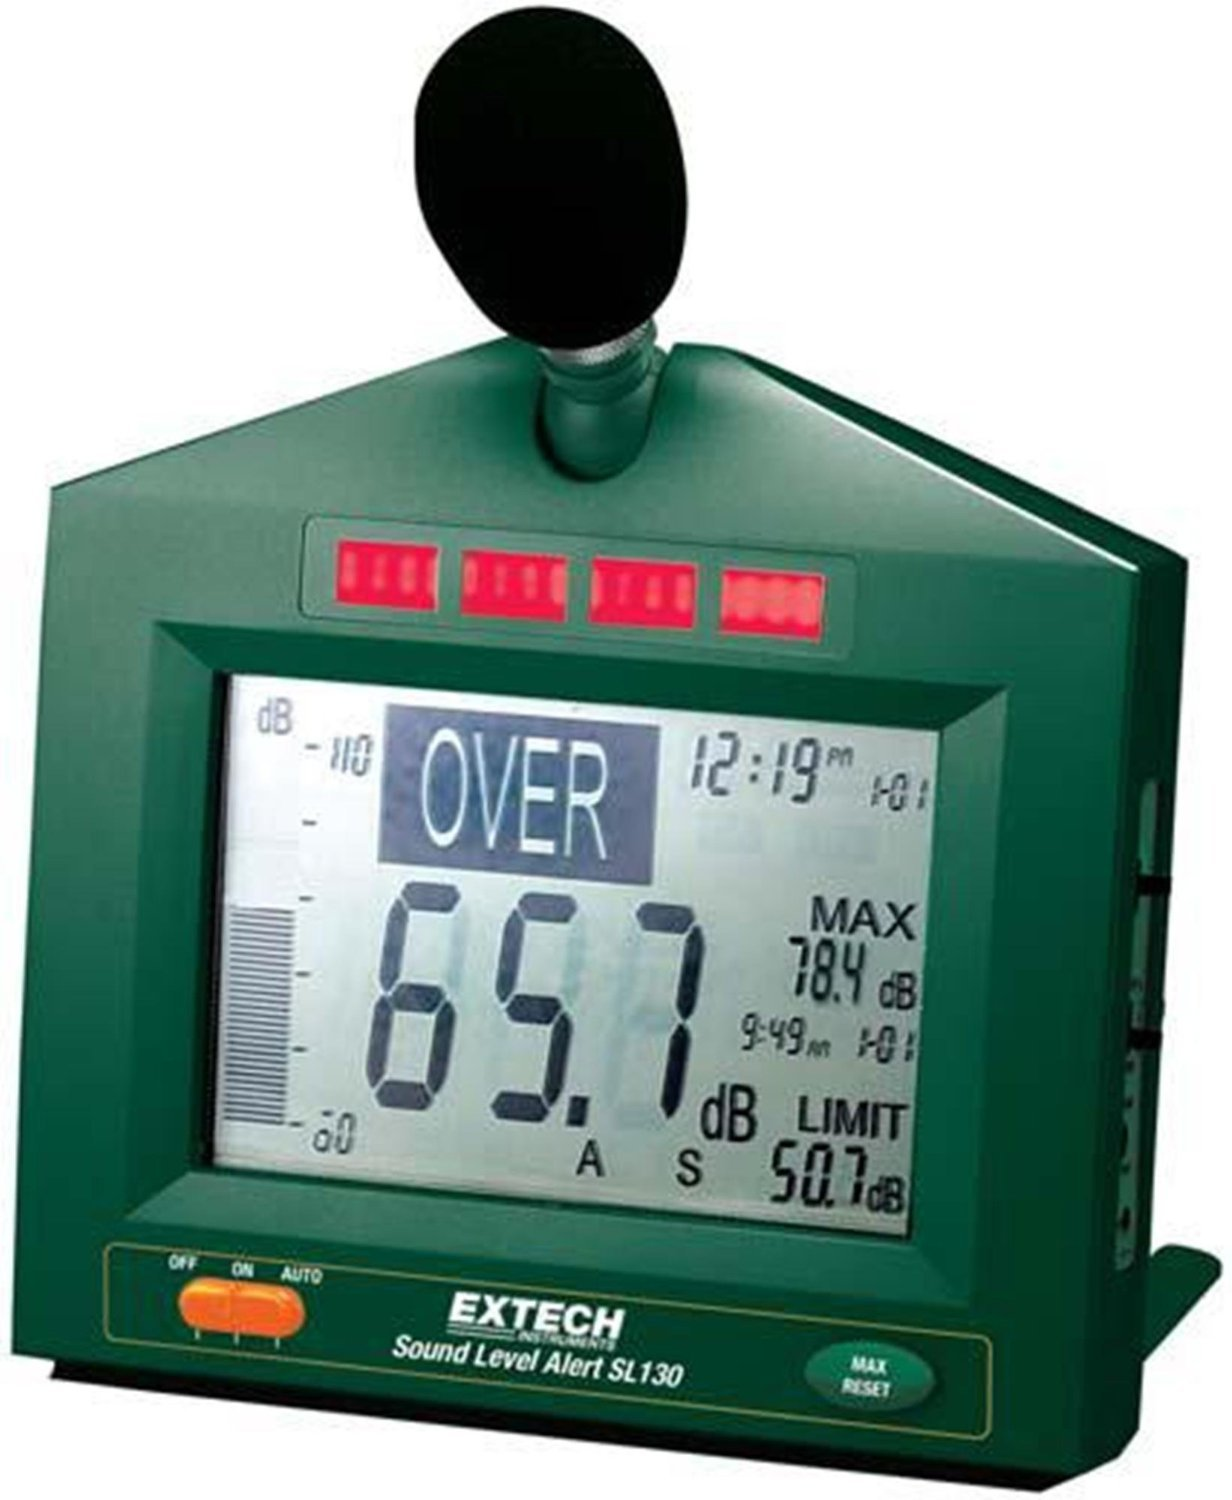 Extech SL130G-NIST Sound Level Alert With Alarm and NIST